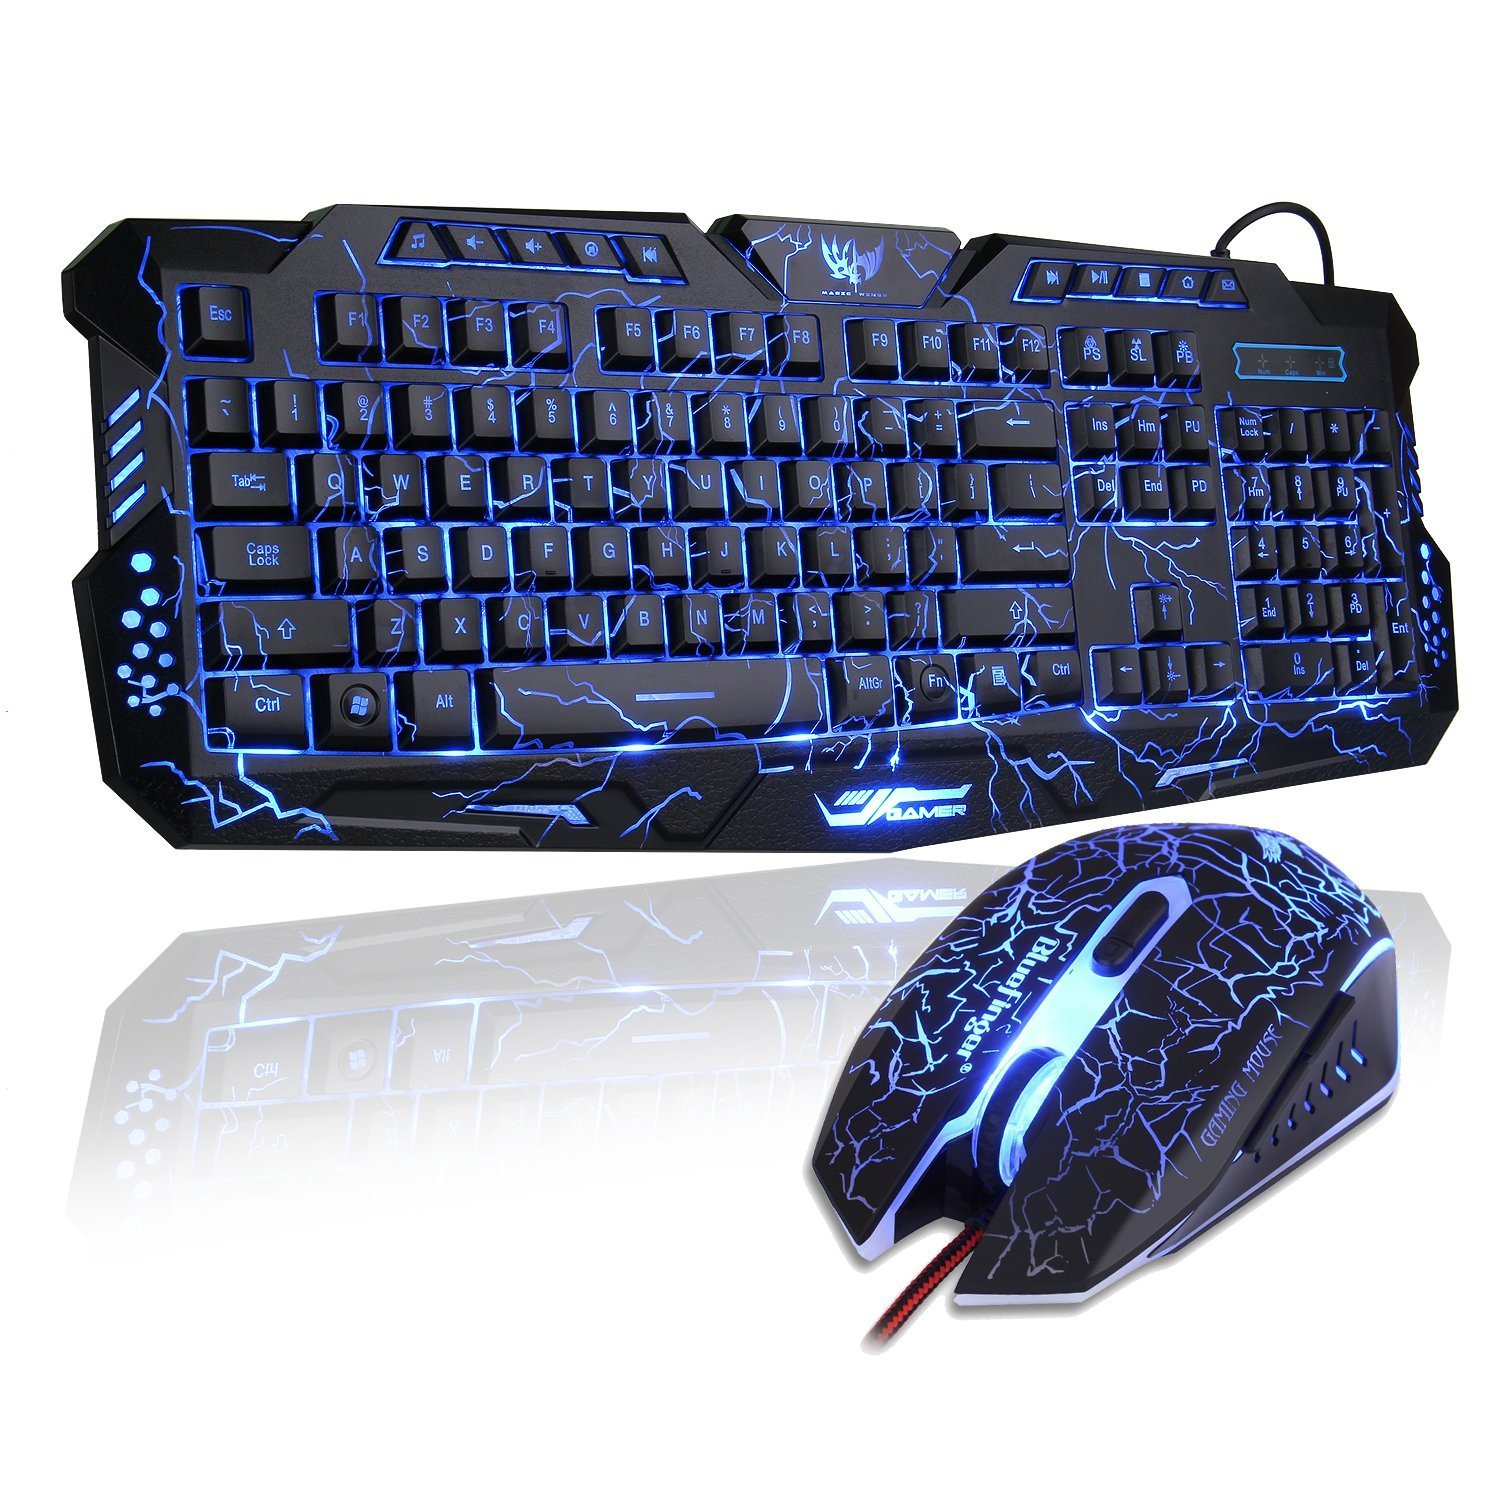 BlueFinger Wired LED Backlit Gaming Keyboard and Mouse Combo for PC Games Office+Customised MousePad by BlueFinger